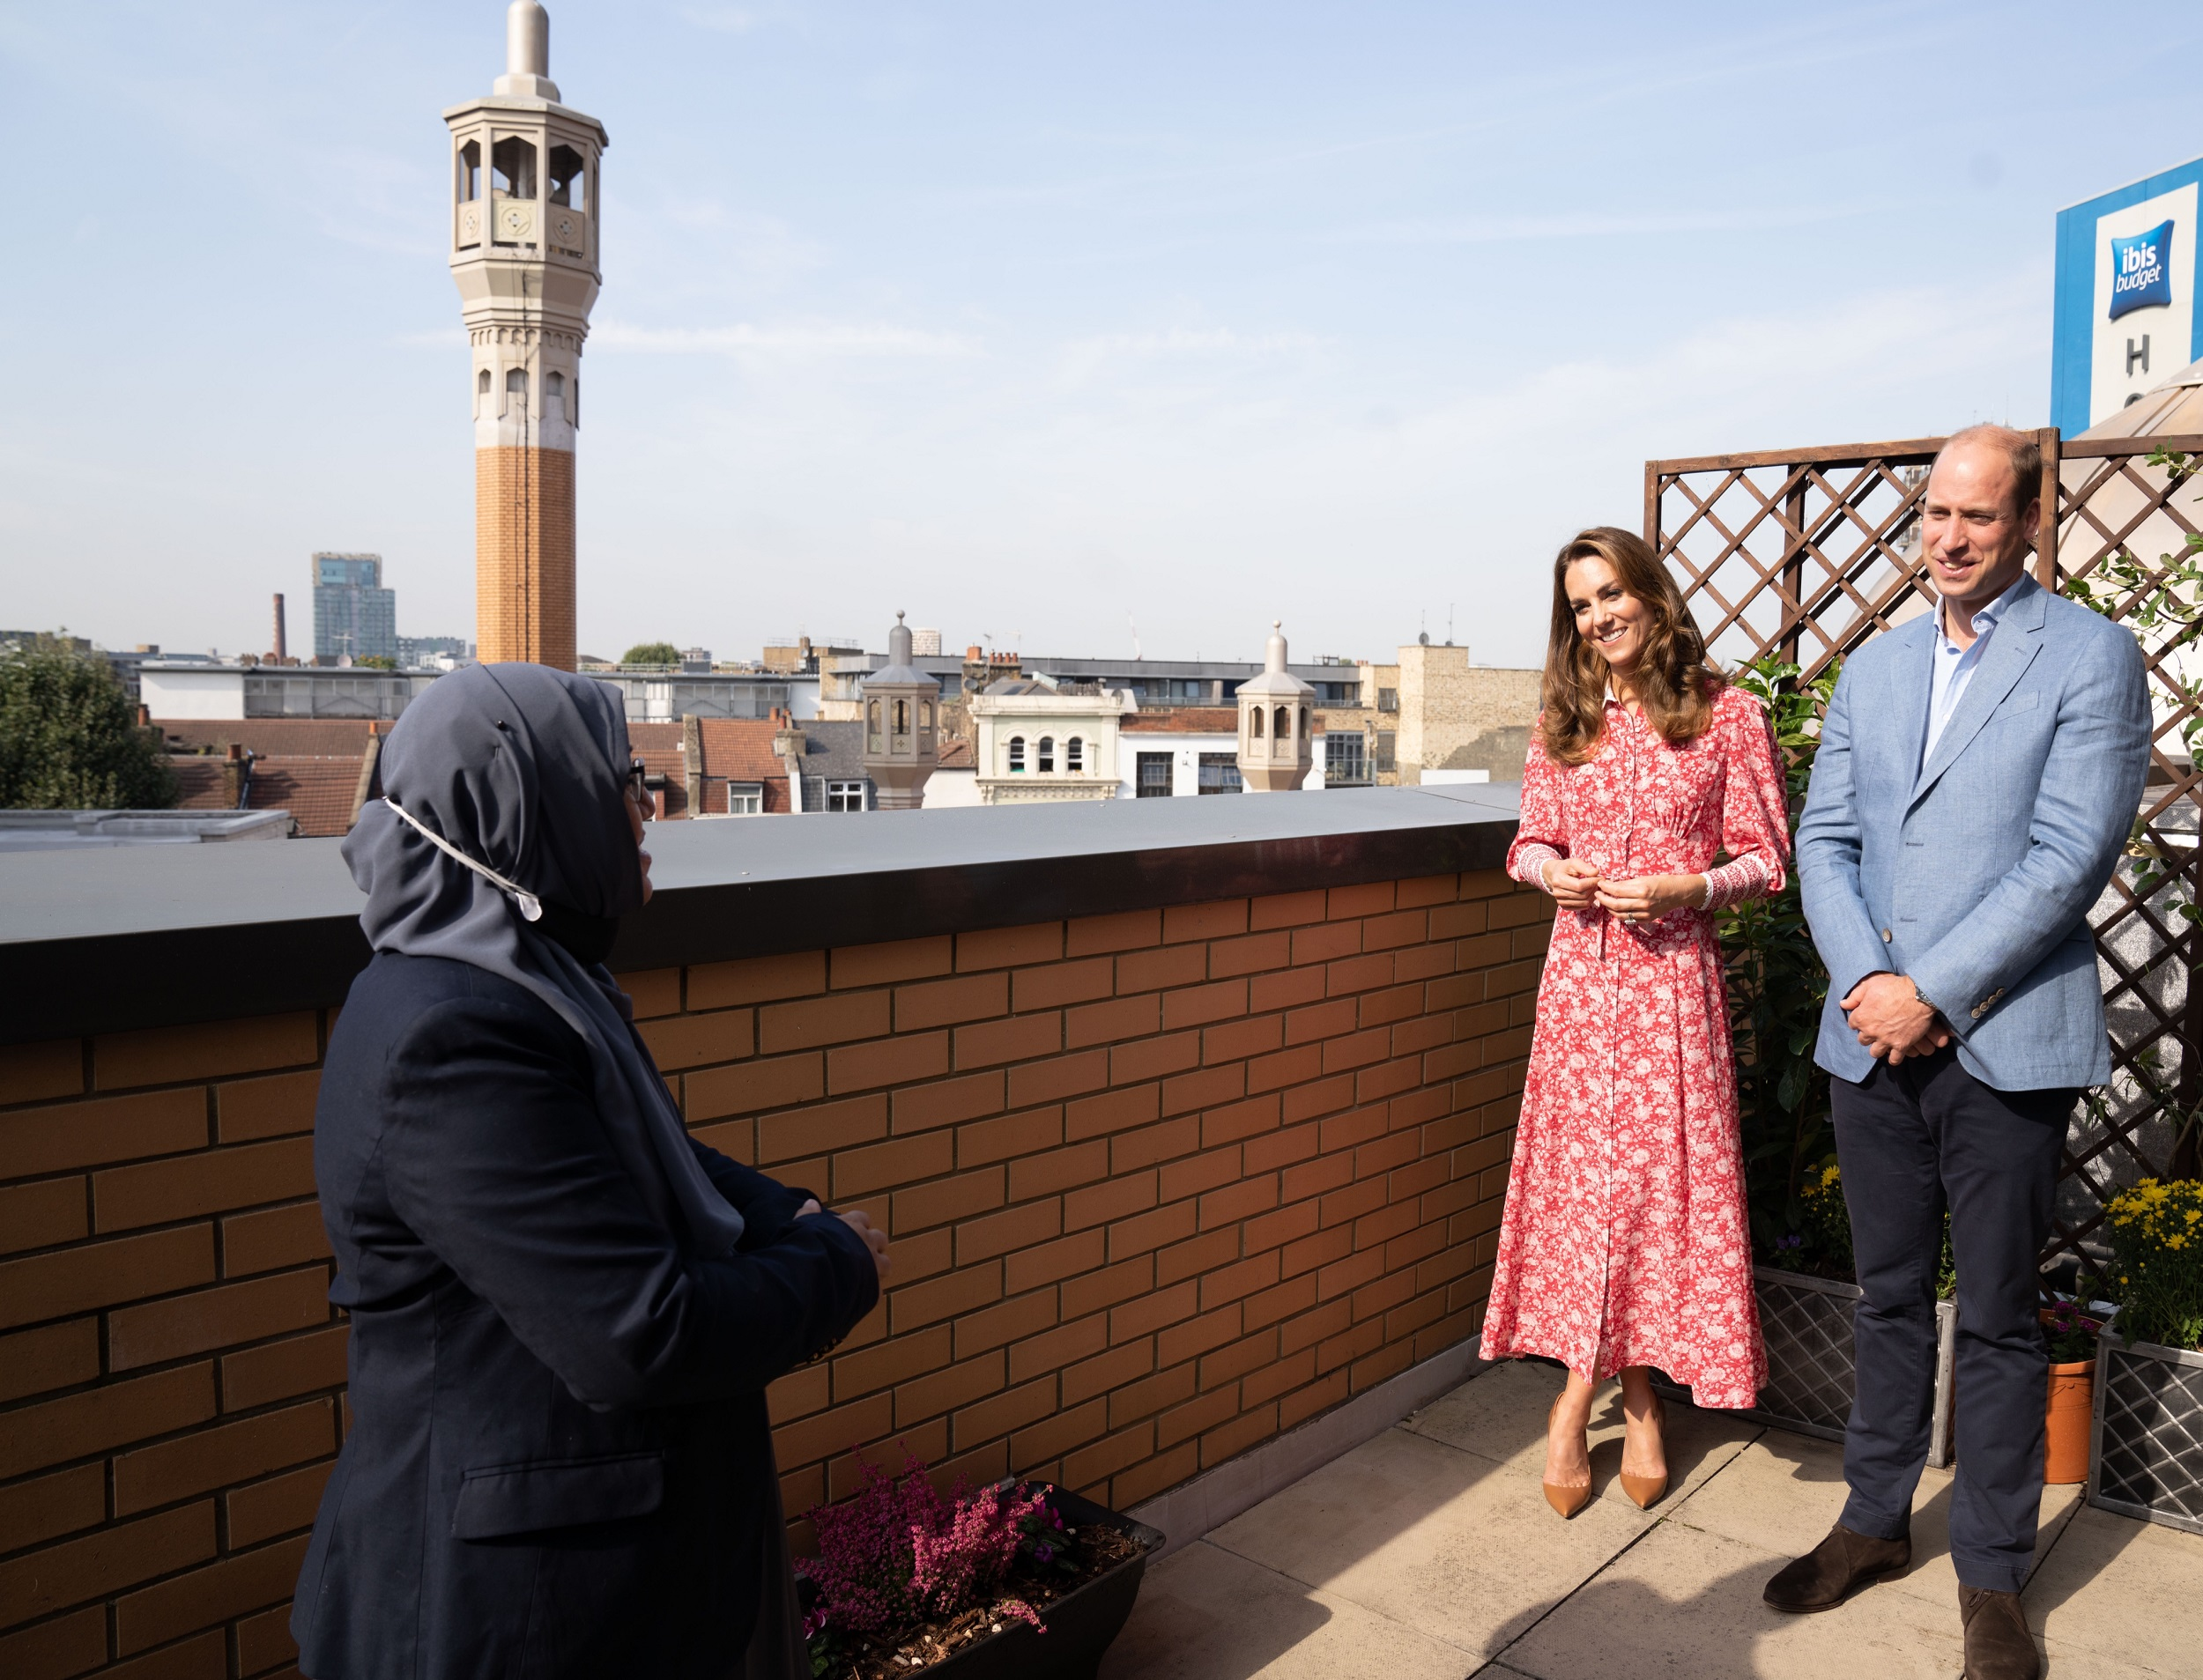 The Duke and Duchess of Cambridge toured the East London Mosque and London Muslim Centre